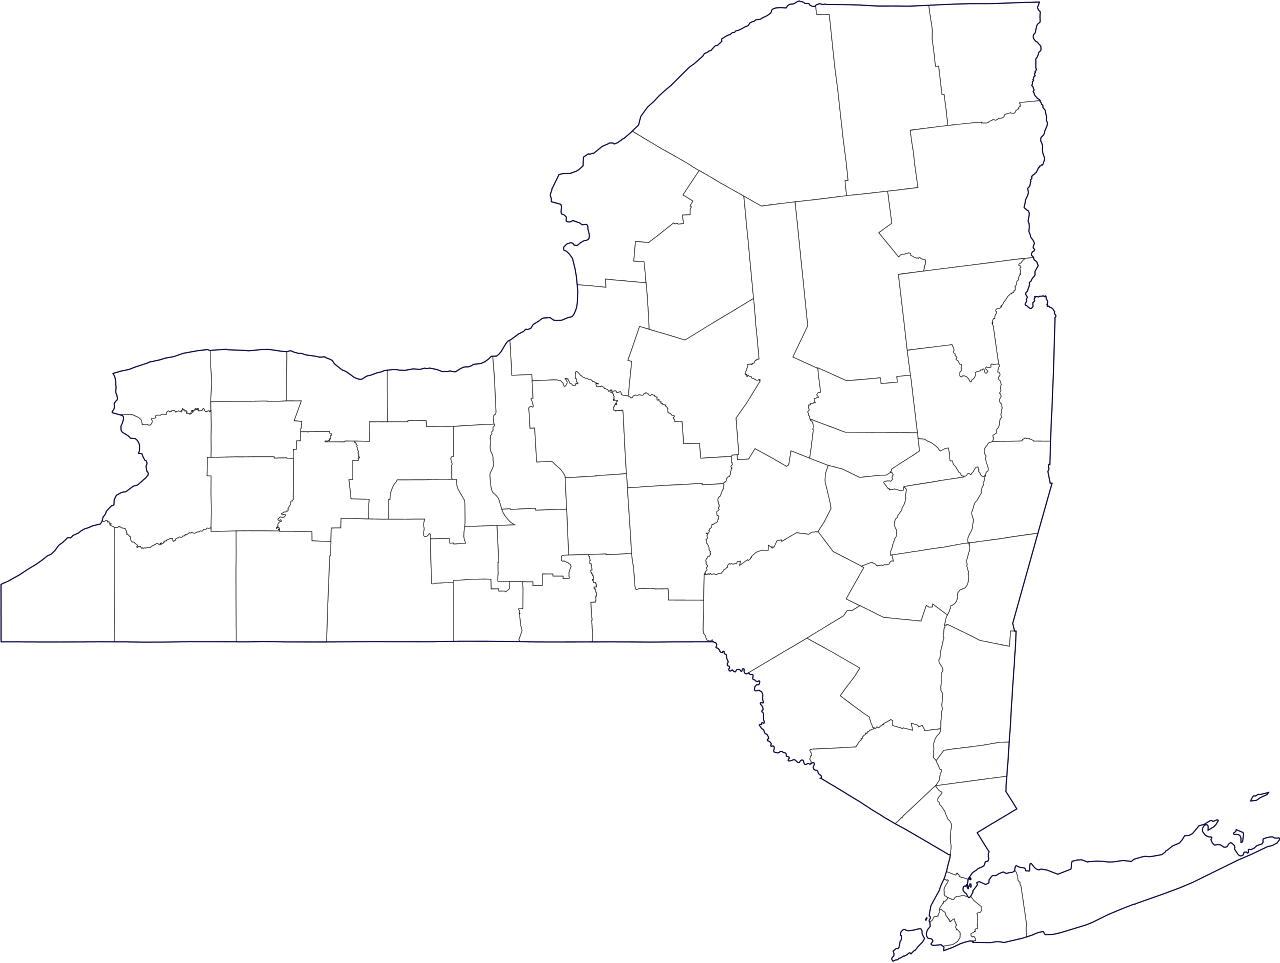 File:Map of New York County Outlines.svg.